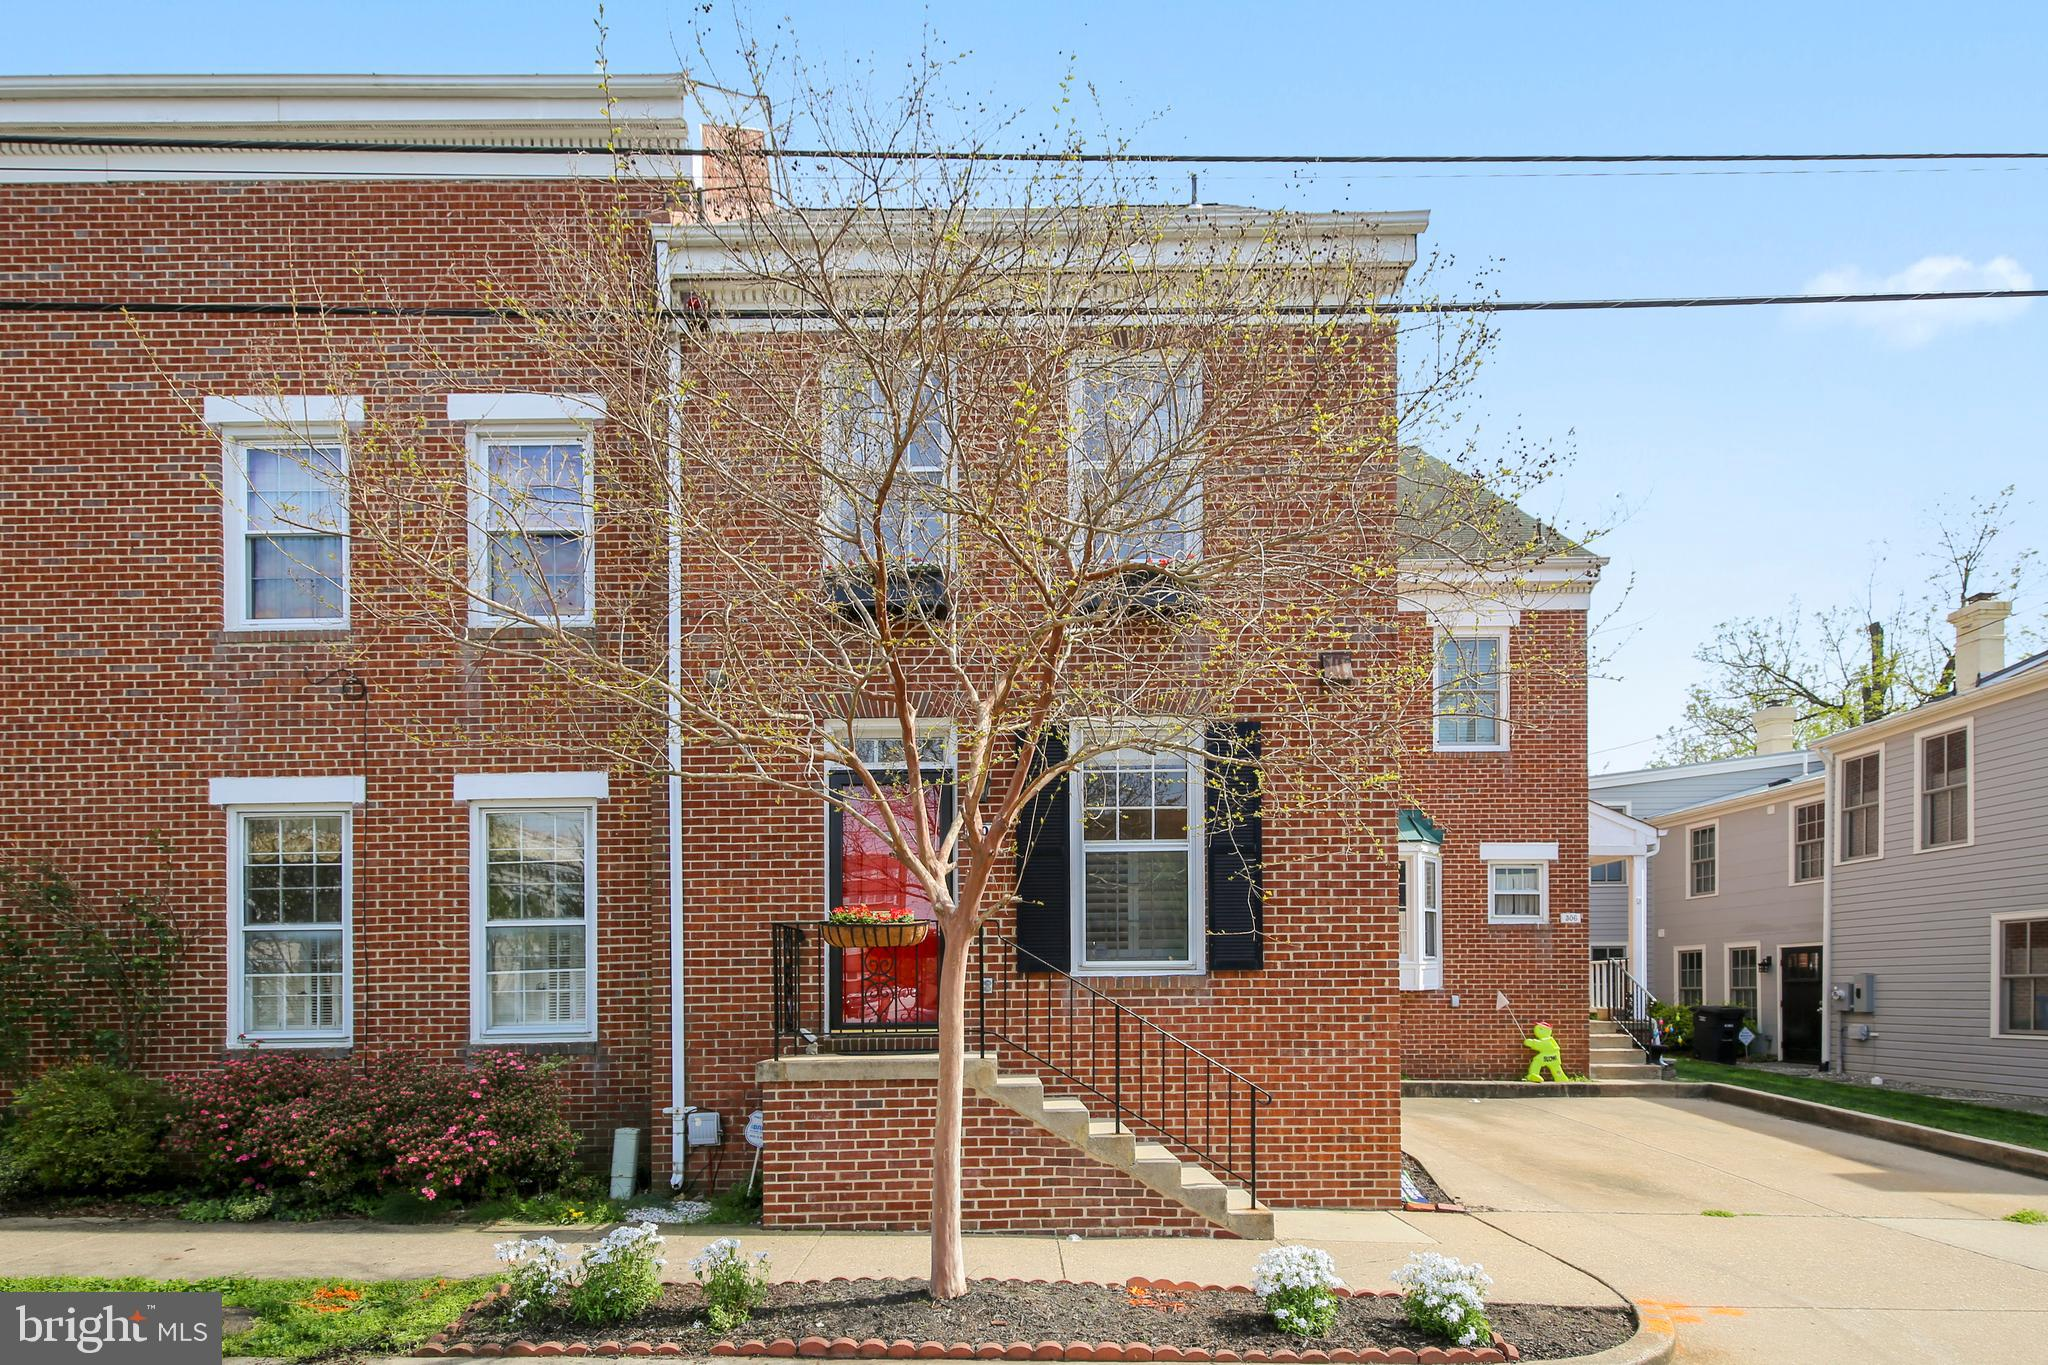 Just Listed!  Open House Saturday 4/20 ~2-4pm and Sunday 4/21 ~1-4pm.  Beautifully renovated, classic red brick townhouse in the heart of Old Town. This well appointed, pristine, 3 level, 1900 sq ft home offers a smartly updated cooks kitchen complete with quartz countertops, top of the line cabinets, all stainless appliances & 12x24 porcelain tile floor opening up to an expansive living & dining area with 12 ft ceilings, wood burning fireplace & a double set of french doors opening to a private, fenced slate patio made for entertainment. Also featuring a sunny, south facing master bedroom & attached master bath w/custom marble shower & counters. The 2nd full bath offers a relaxing soaking tub & the much desired powder room is located on the main floor. Original & beautifully maintained hardwood floors are found throughout. The generously sized, floored attic offers loads of storage. Ideally situated on a quiet cul-de-sac w/private driveway just 1 block to King St with all the fun of the unique shops & restaurants. Located in the Lyles Crouch Elementary School District & just around the corner from King St Metro, Whole Foods, Route 1, GW Parkway & 495.  You will love this home!